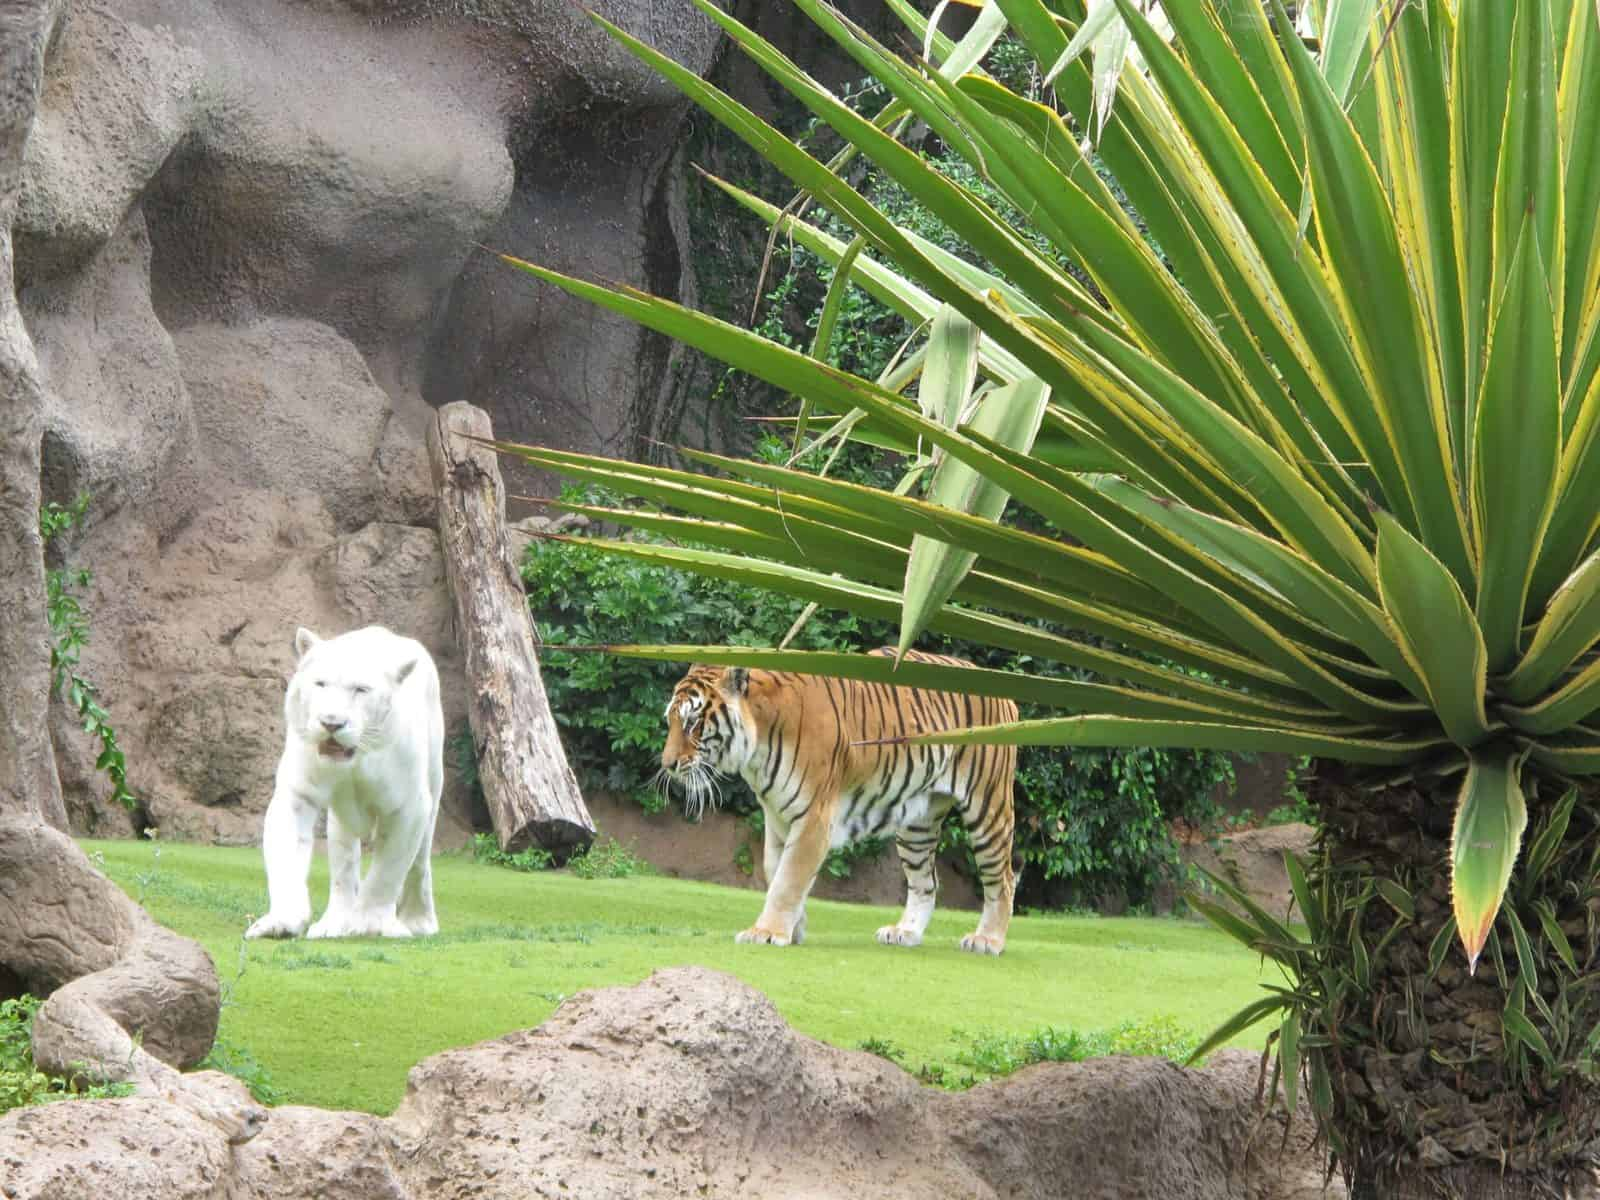 A white tiger and a regular tiger at Loro Parque in Tenerife Spain